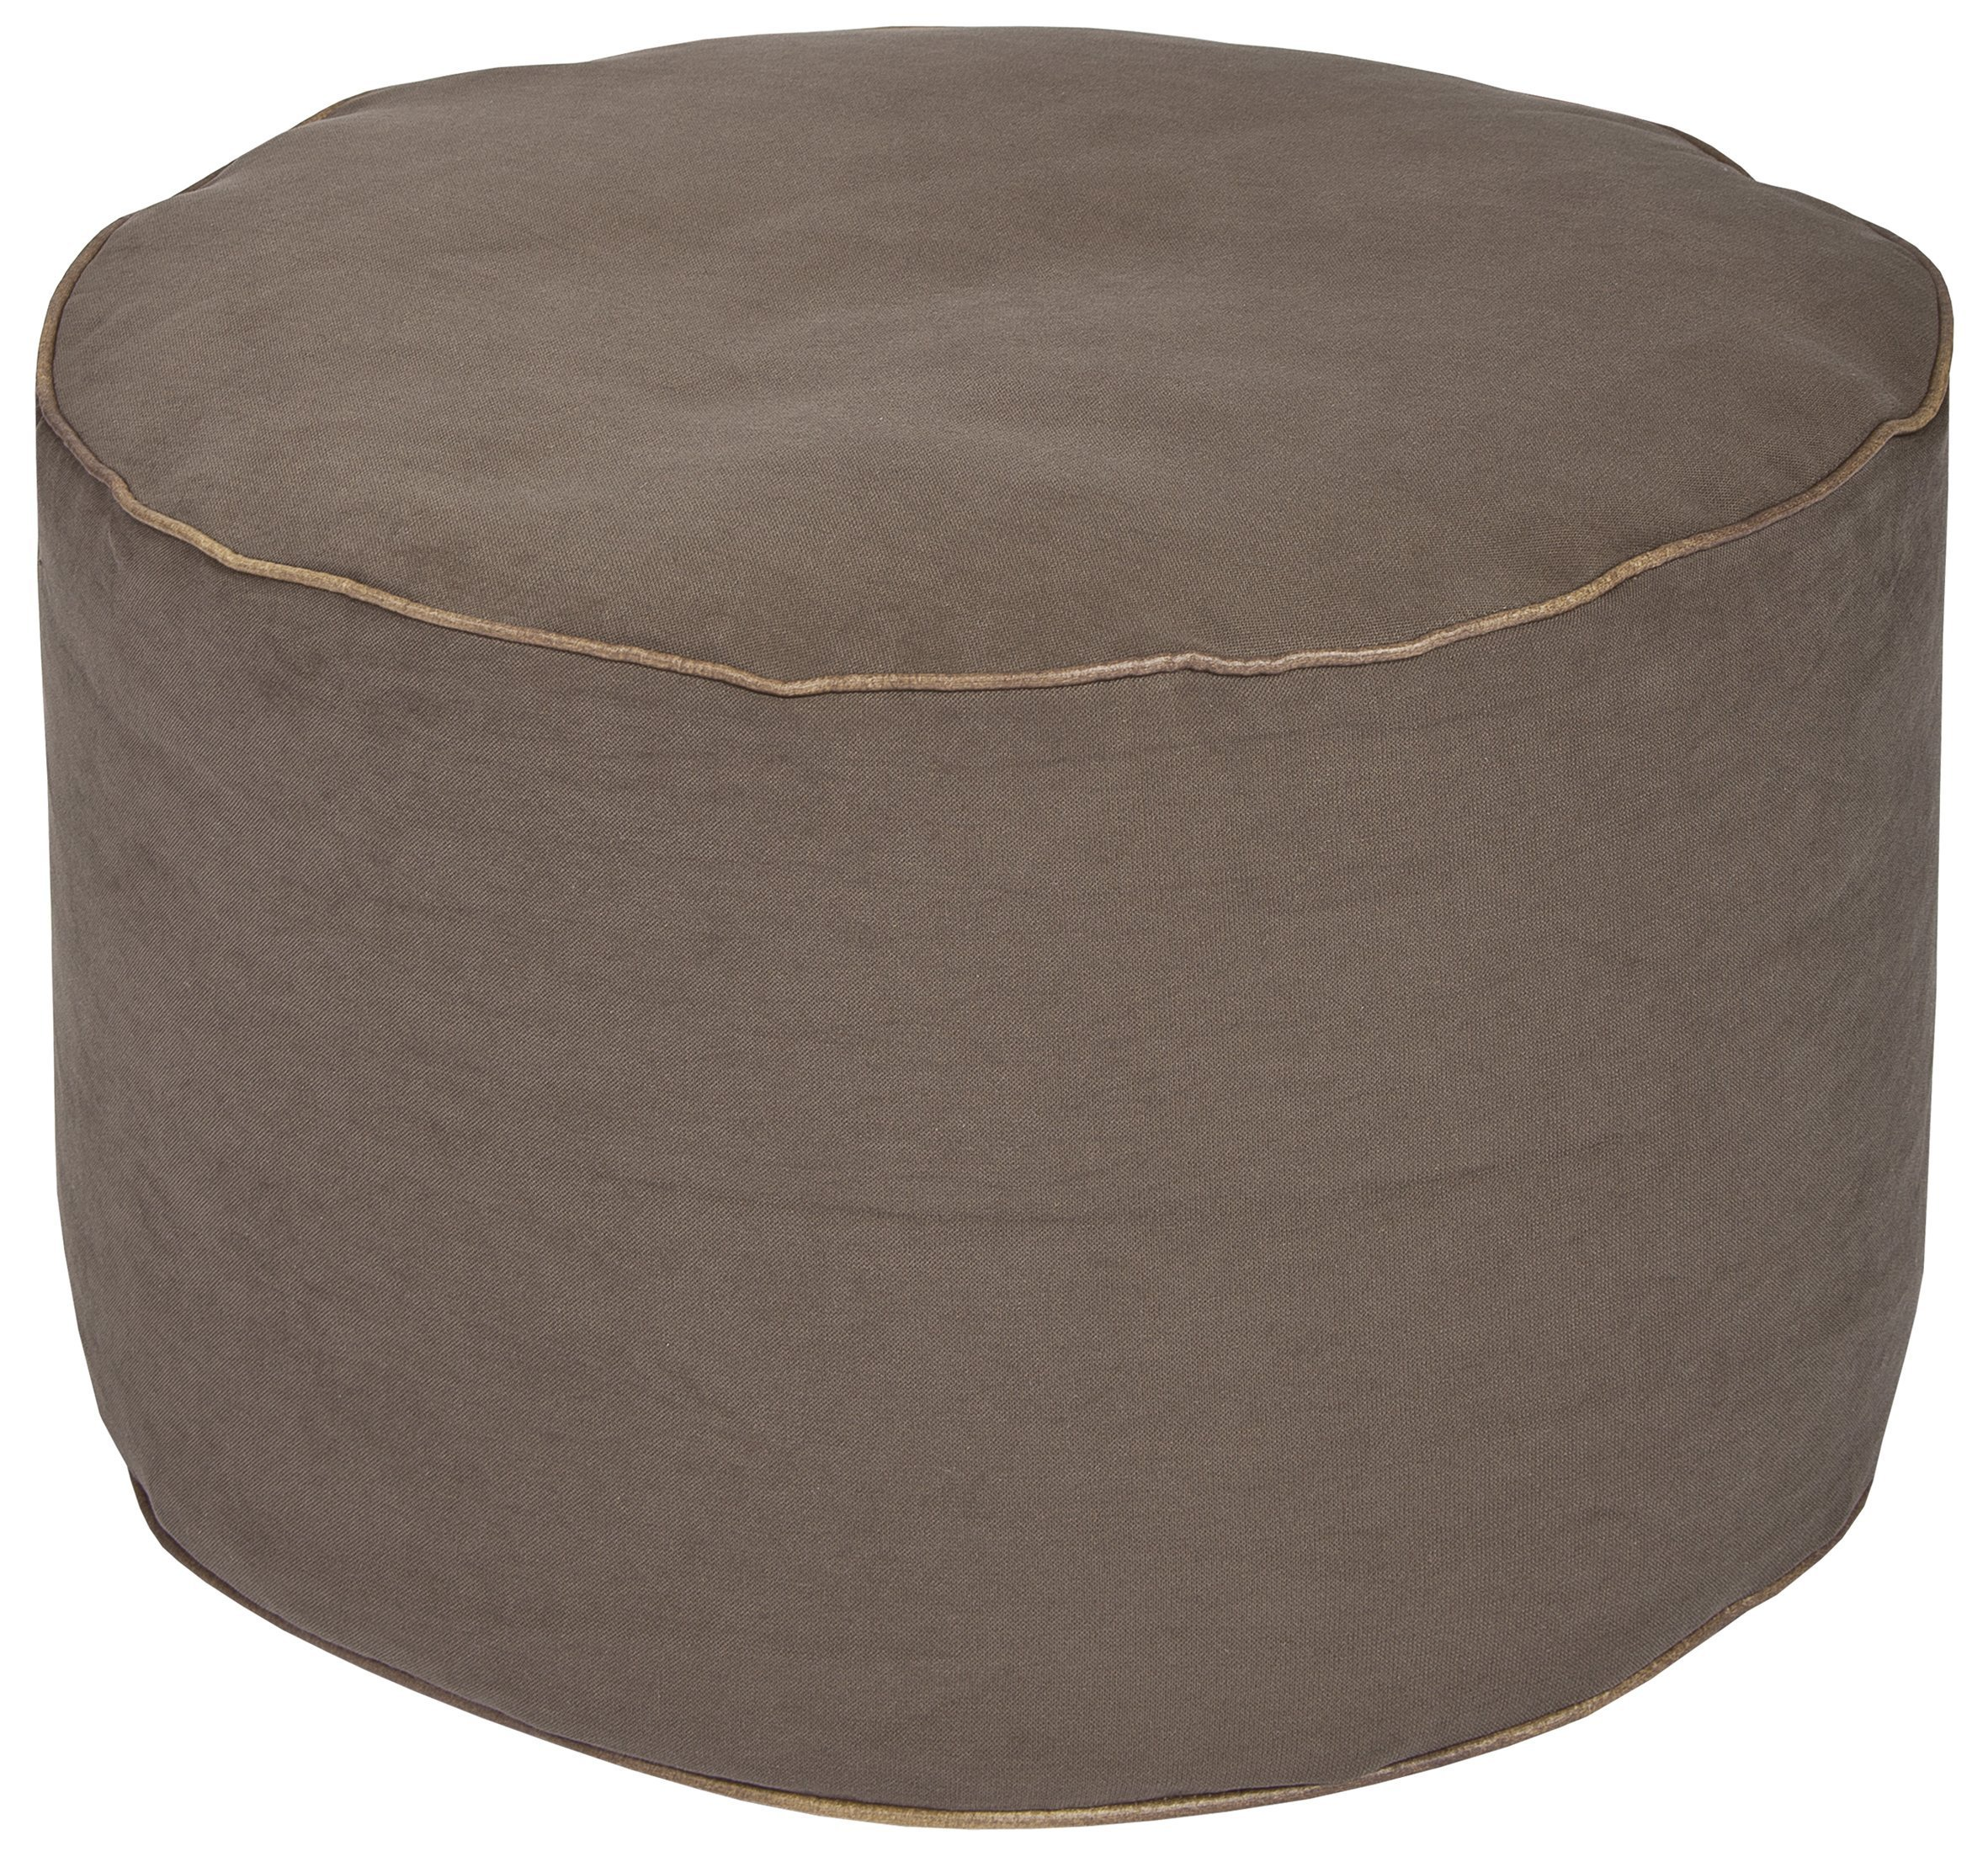 SITTING POINT Gouchee Home Jamie Pouf Collection Contemporary Polyester Upholstered Round Pouf/Ottoman, Brown